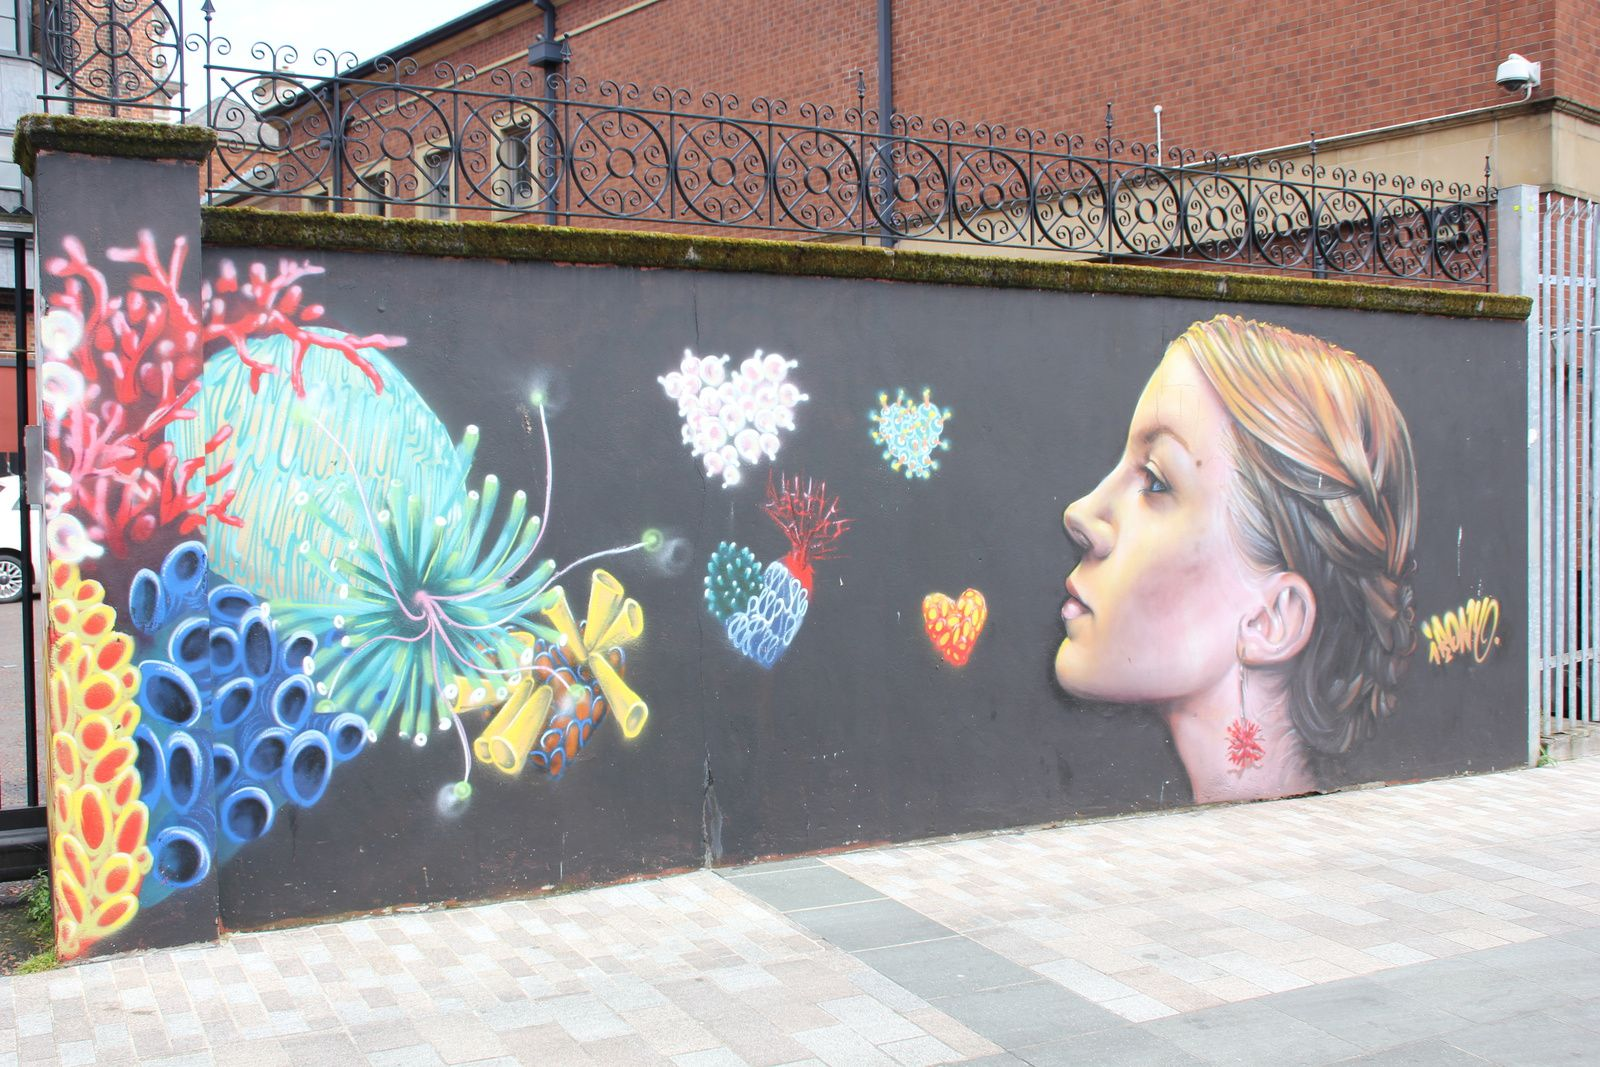 644) Bank Street, Belfast Centre